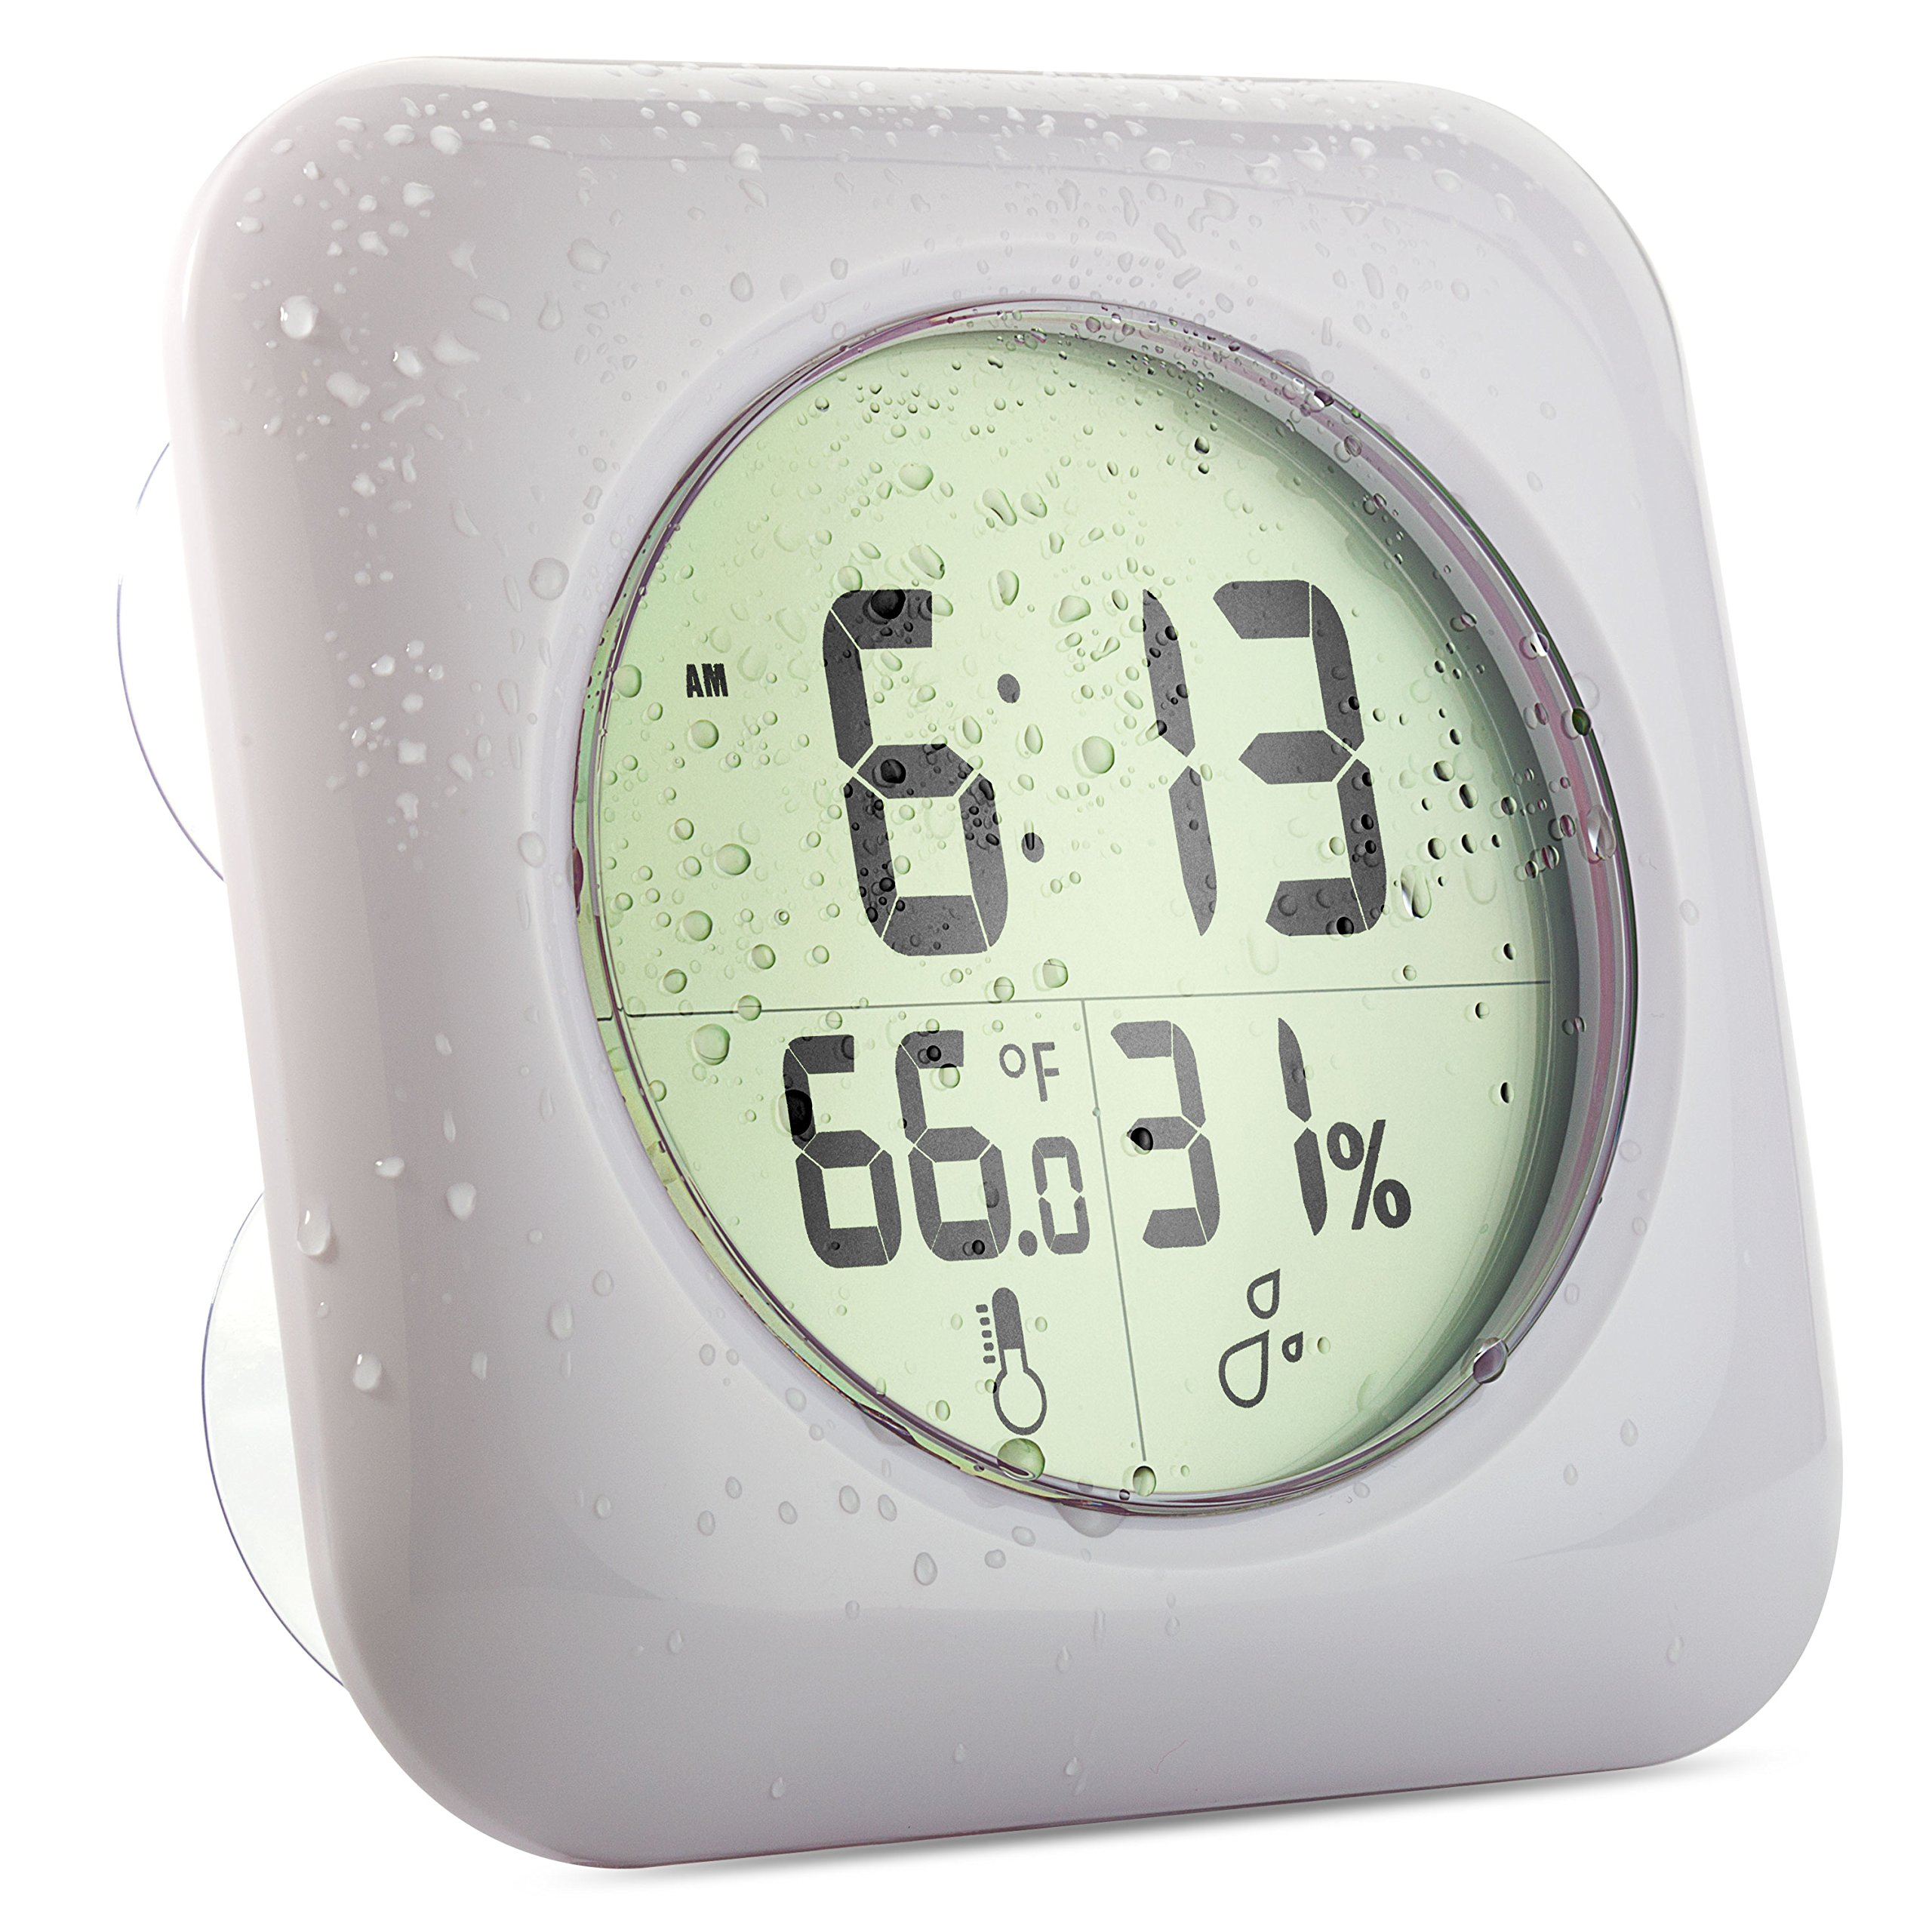 Cirbic Shower Clock Large with suction cups - water resistant bathroom clock displays time, temperature and humidity